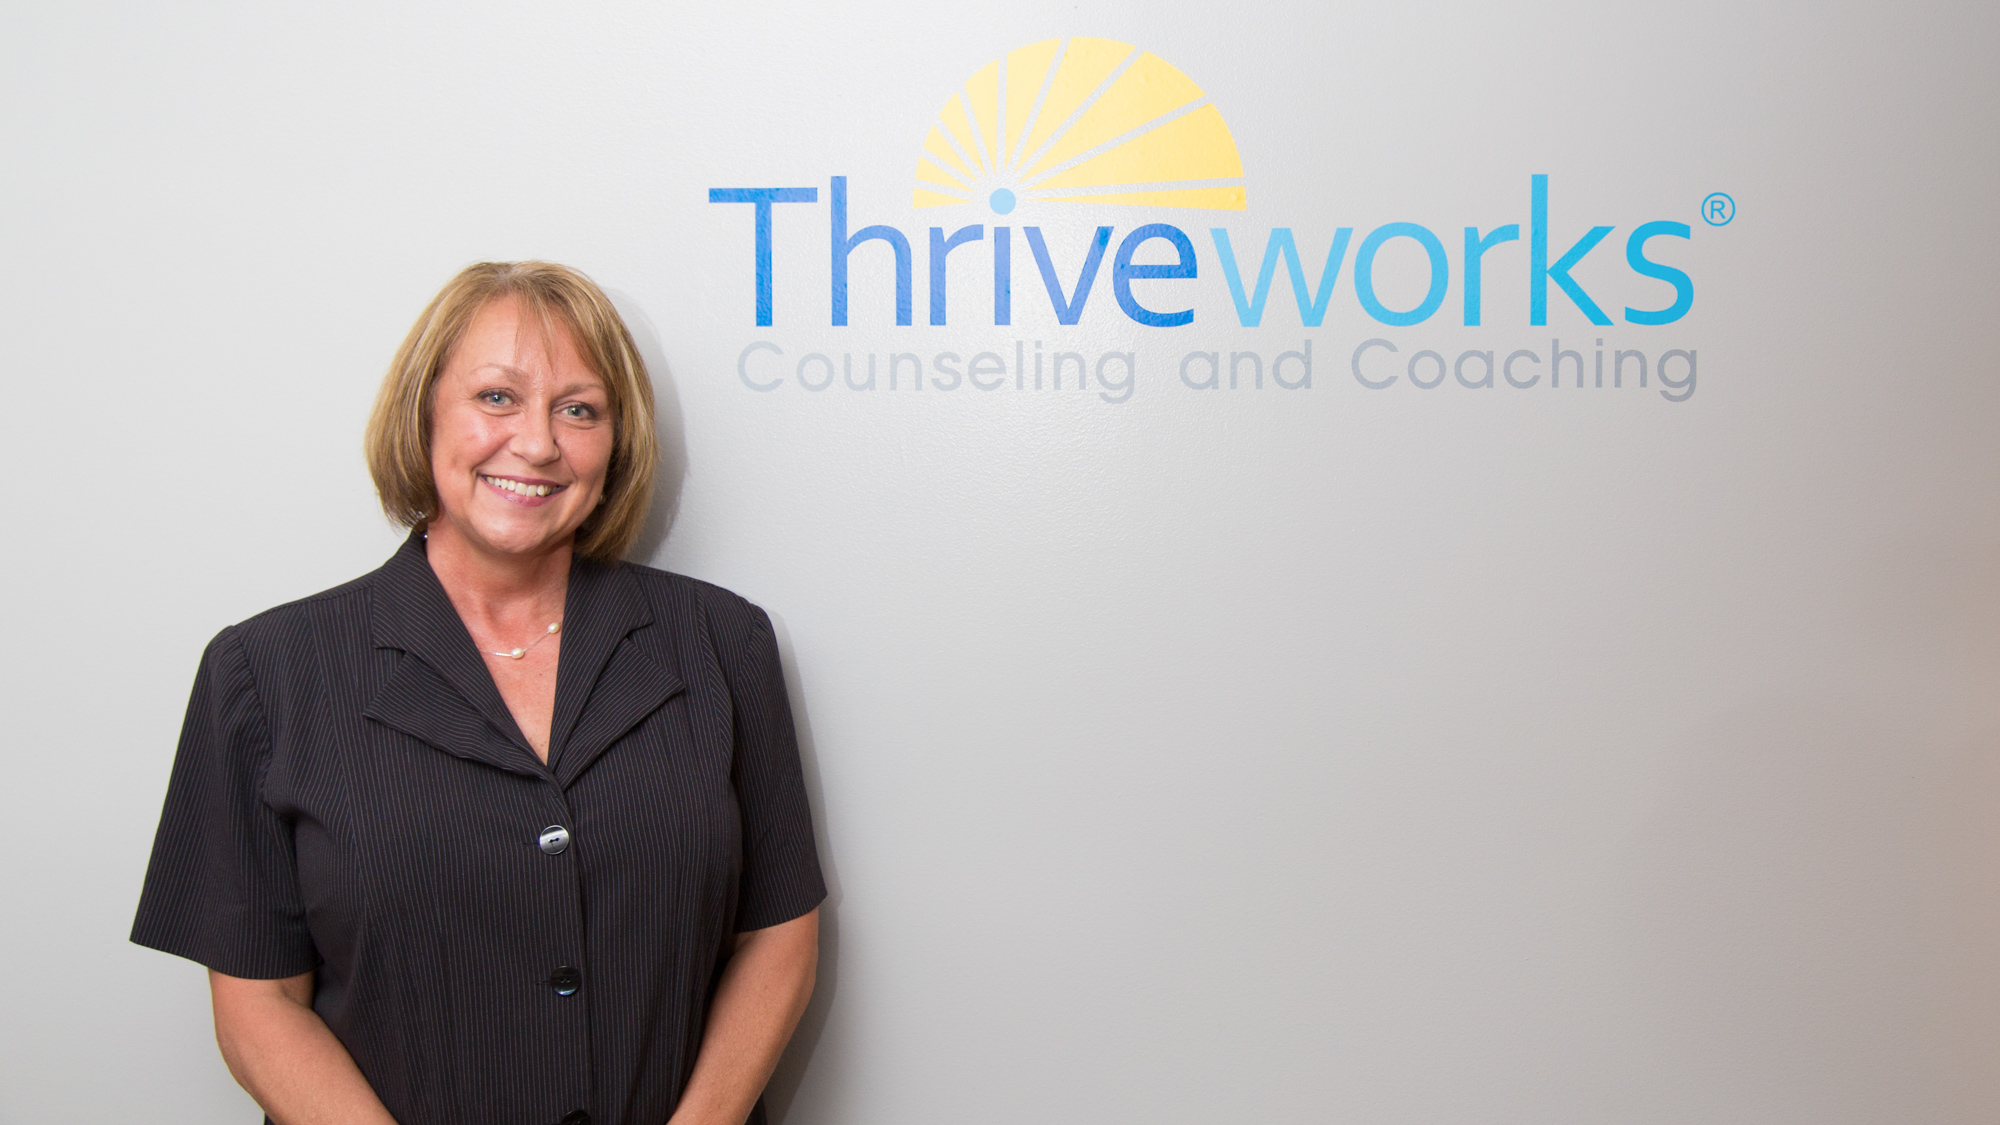 patricia starbird fthriveworks bristol counseling